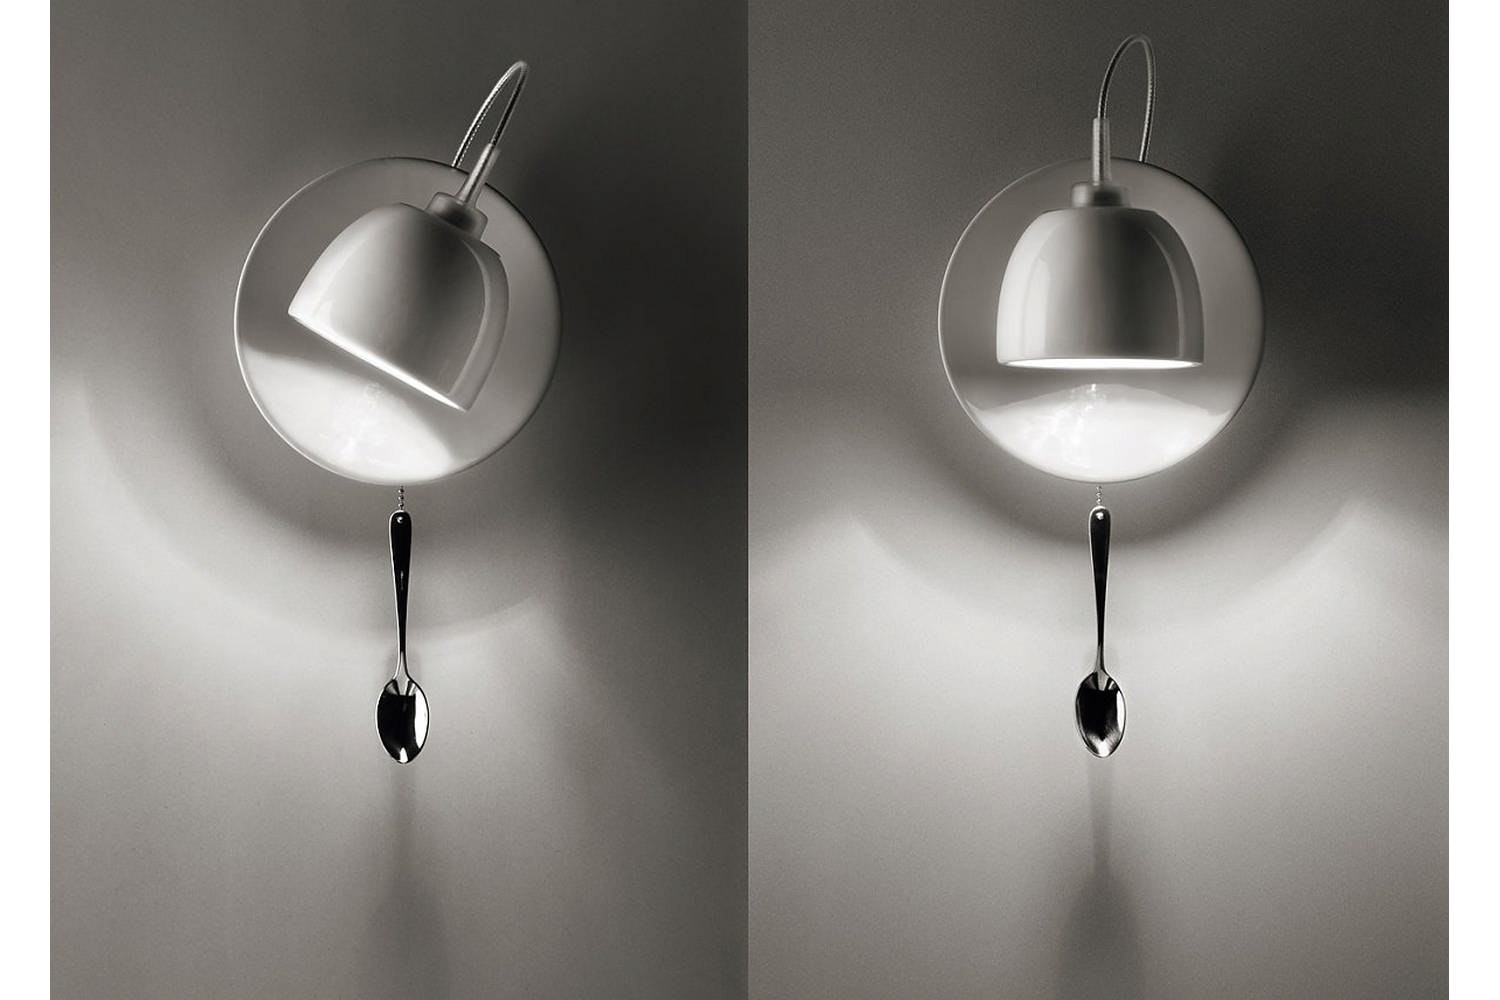 Light Au Lait Wall Lamp by Fabien Dumas, Ingo Maurer und Team for Ingo Maurer